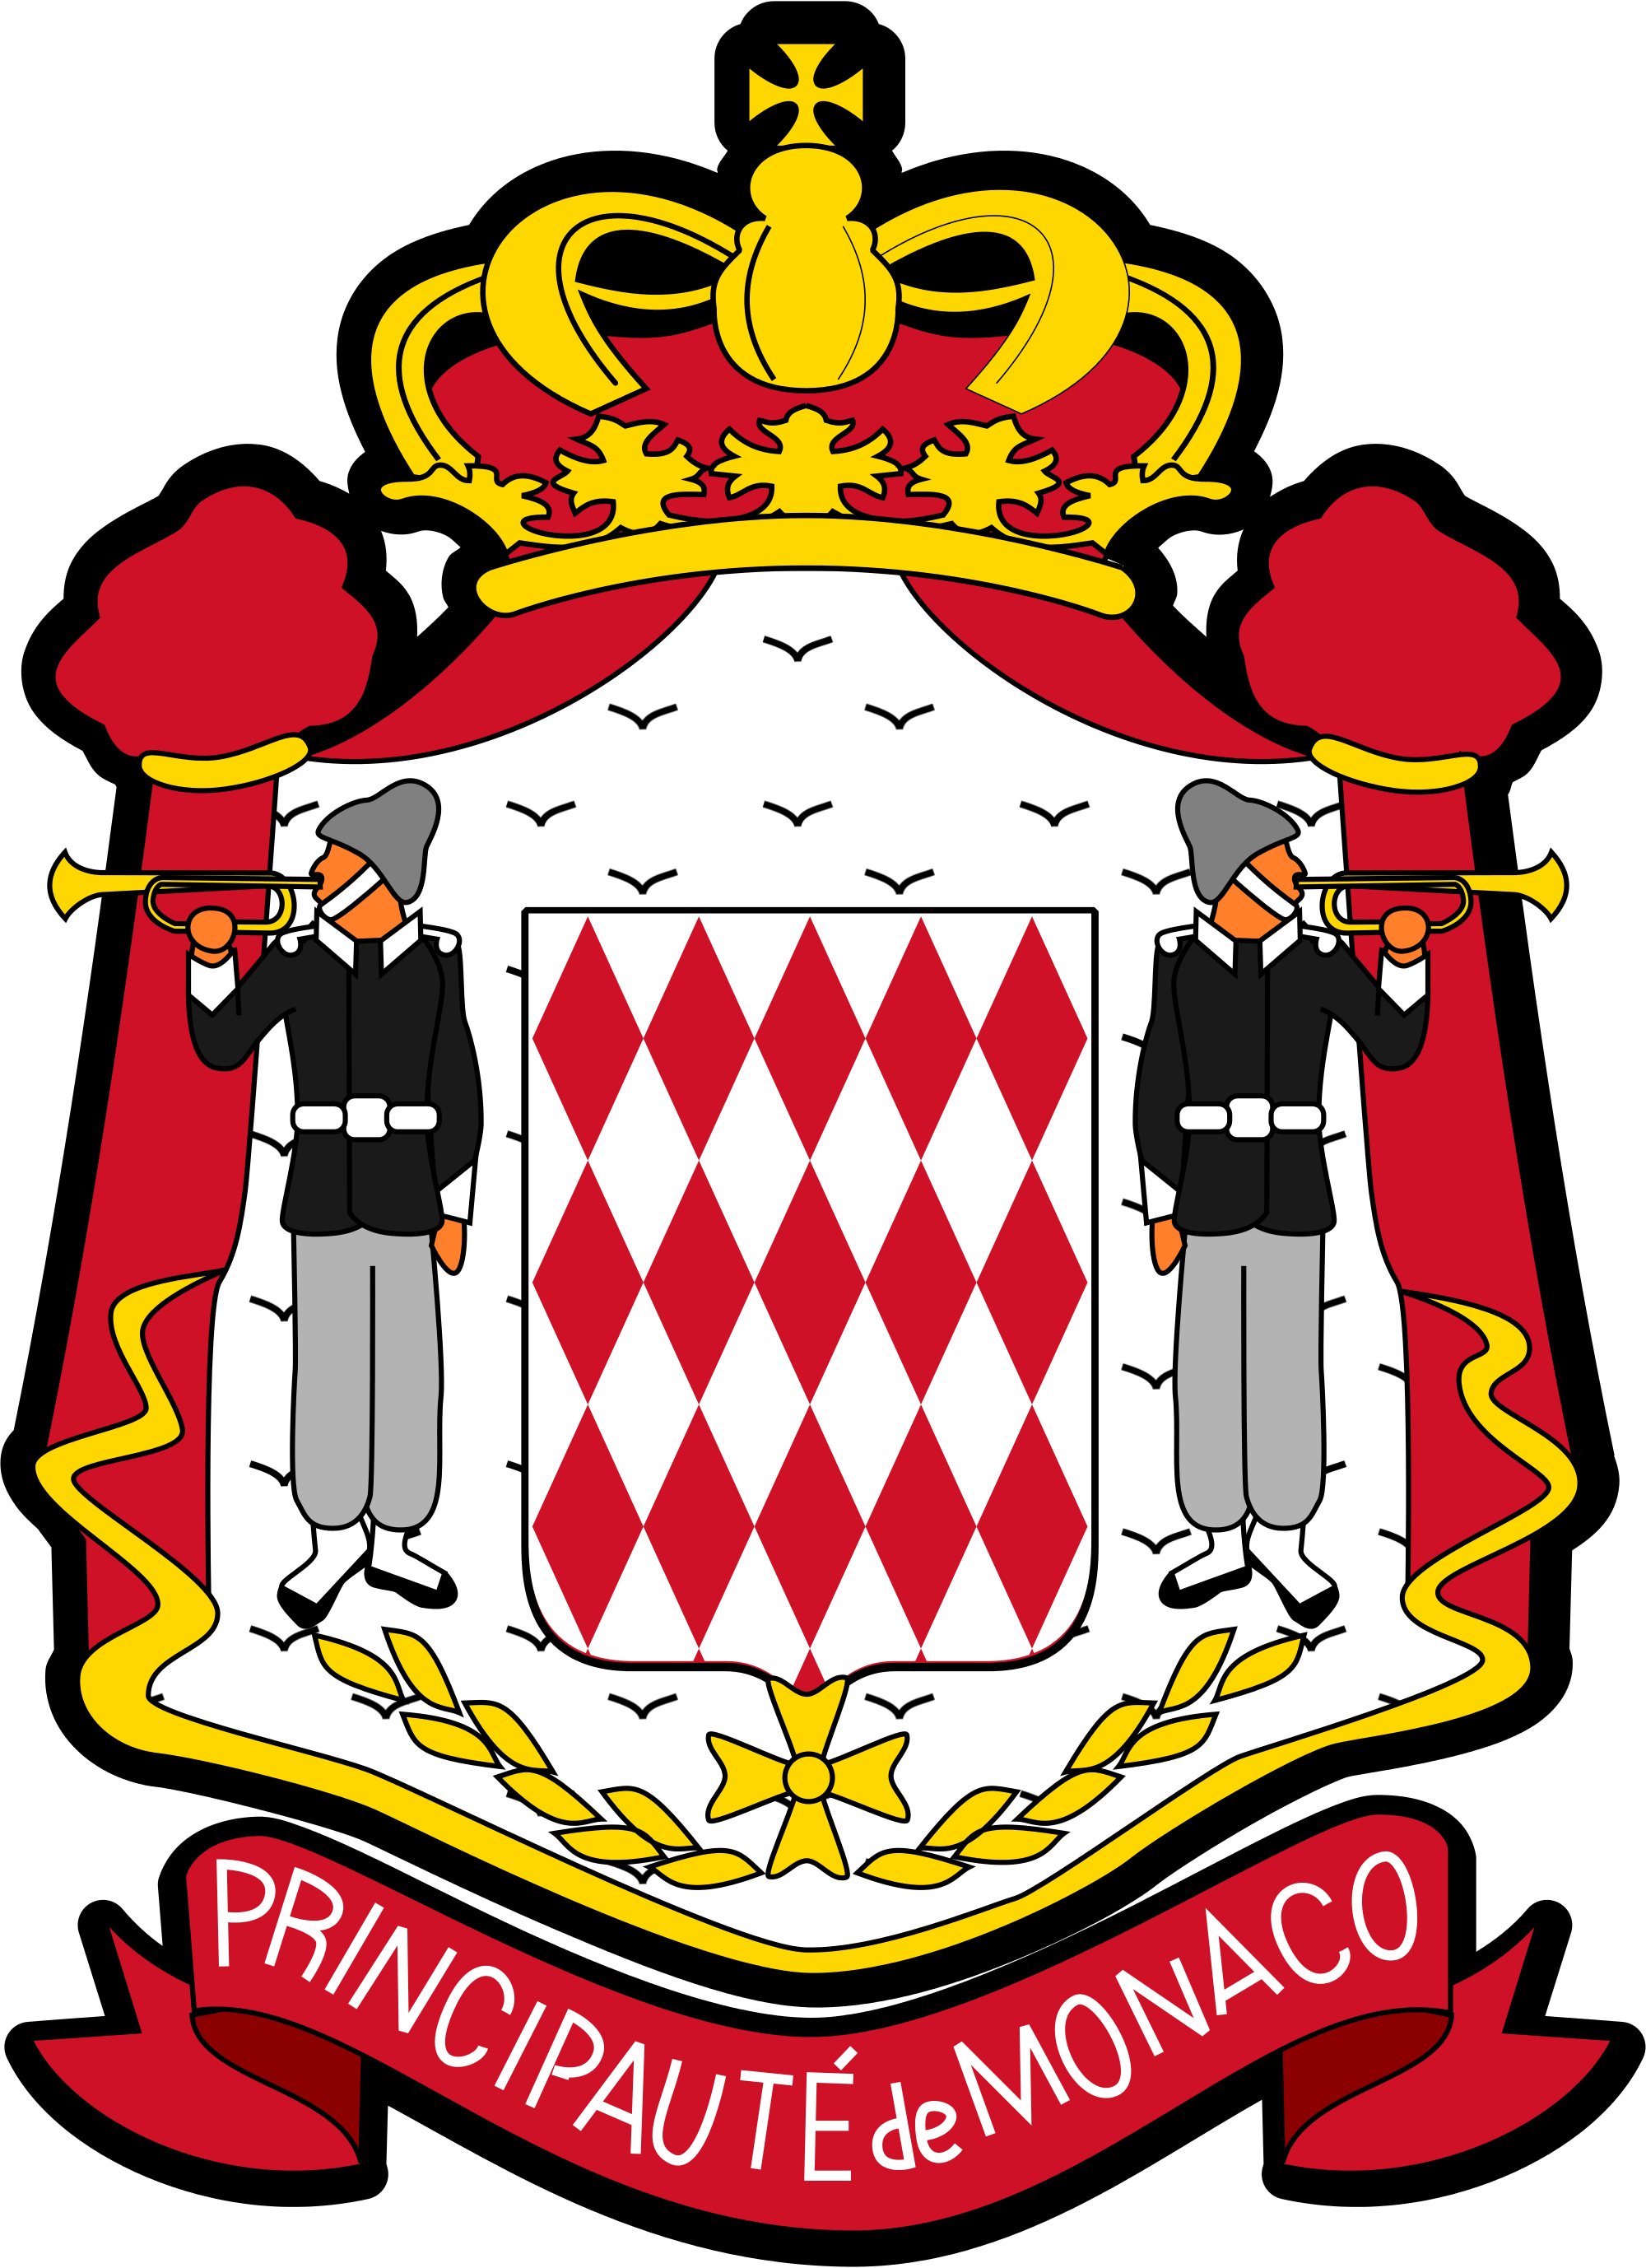 File:Coat of arms of Monaco (version).svg.